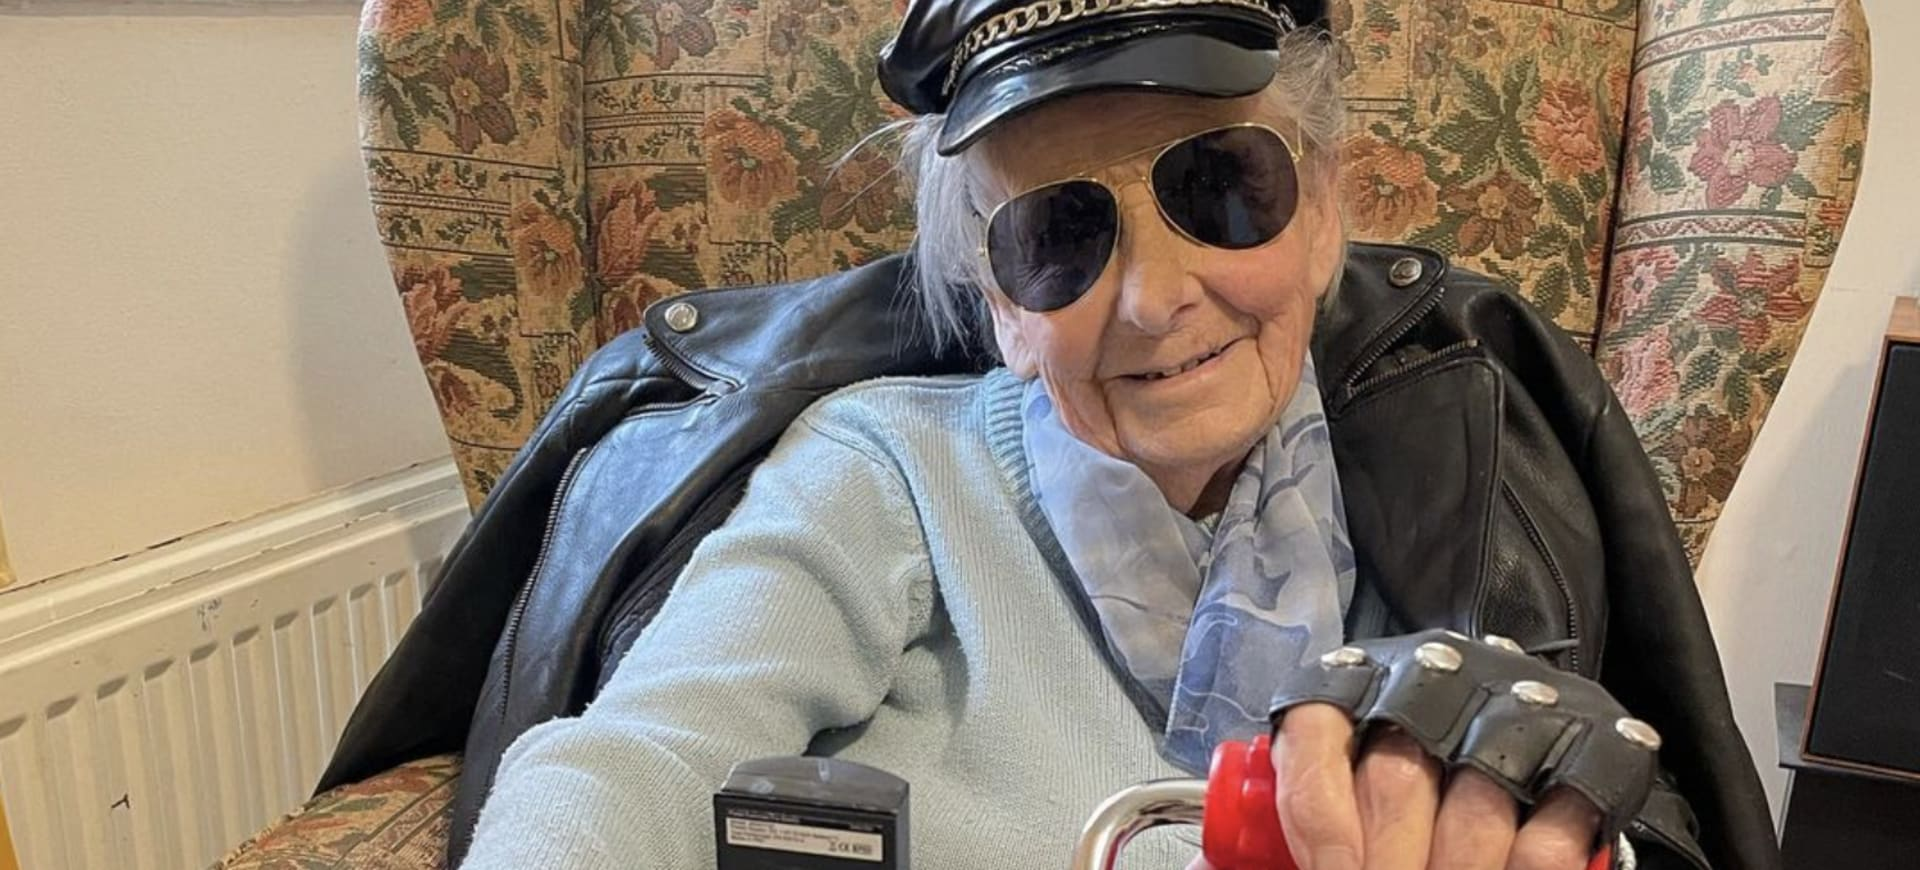 98-year-old woman takes on Captain Tom-style cycle challenge for homelessness